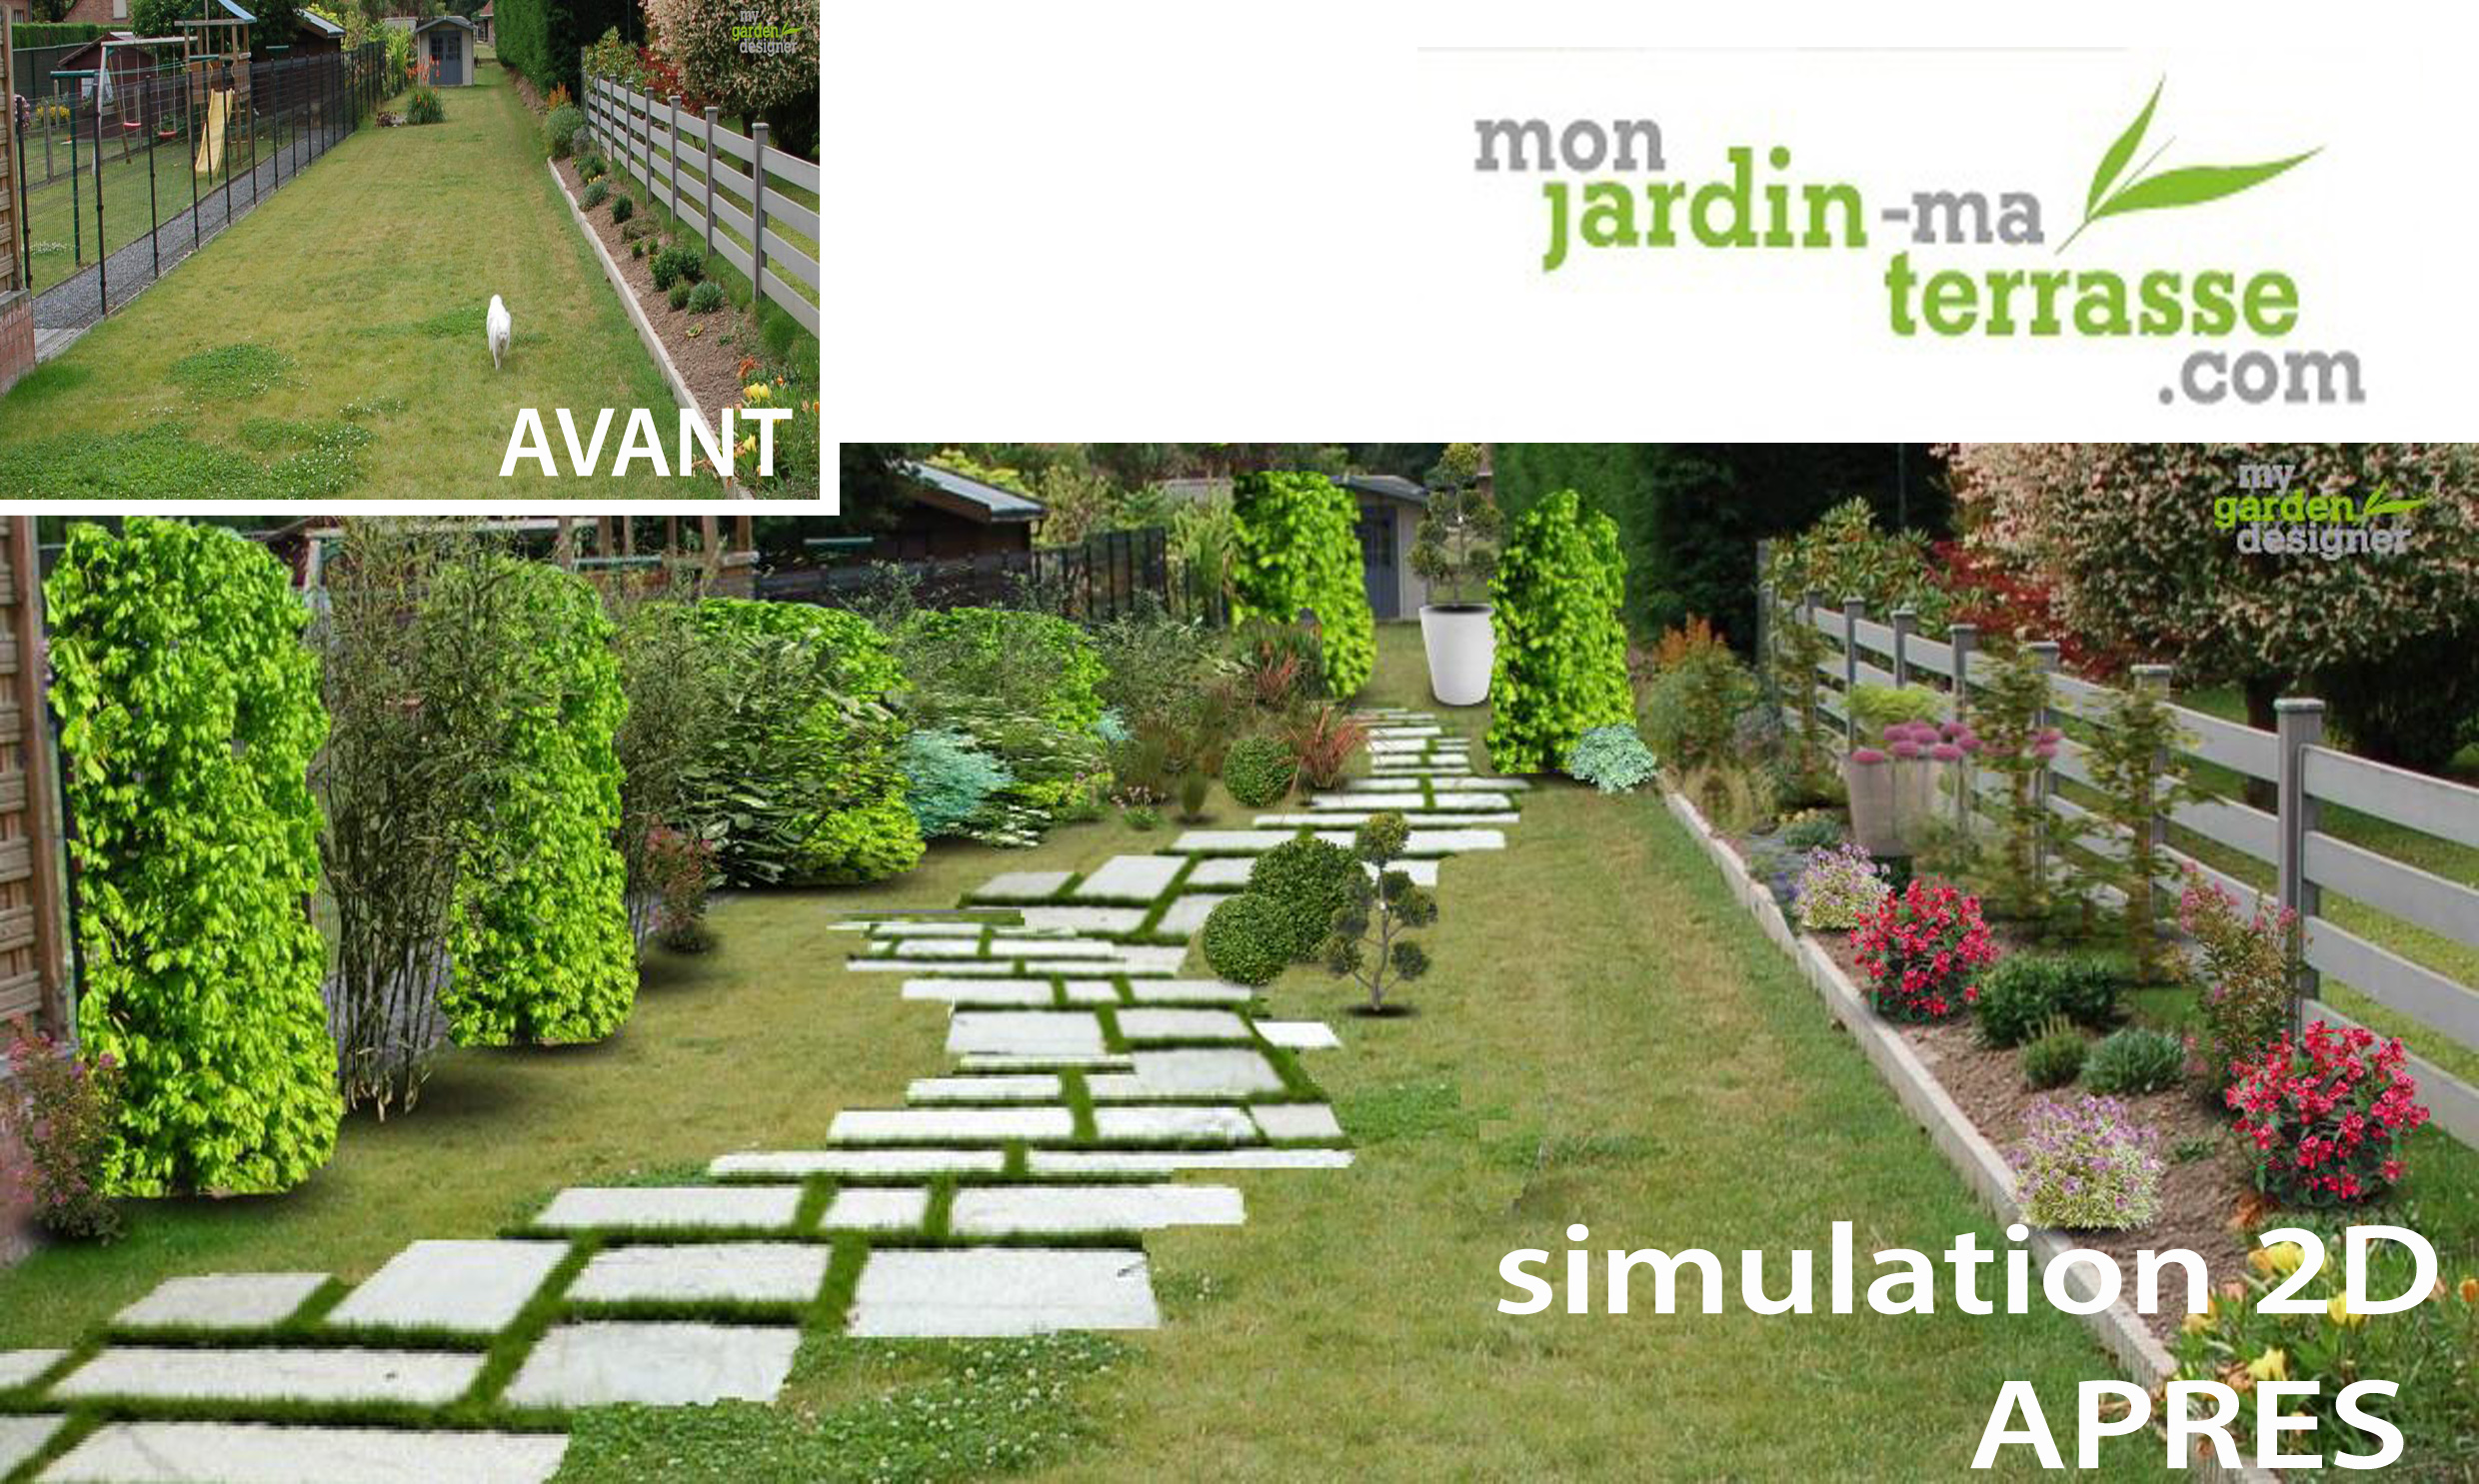 Comment am nager son jardin en longueur monjardin for Amenager son jardin